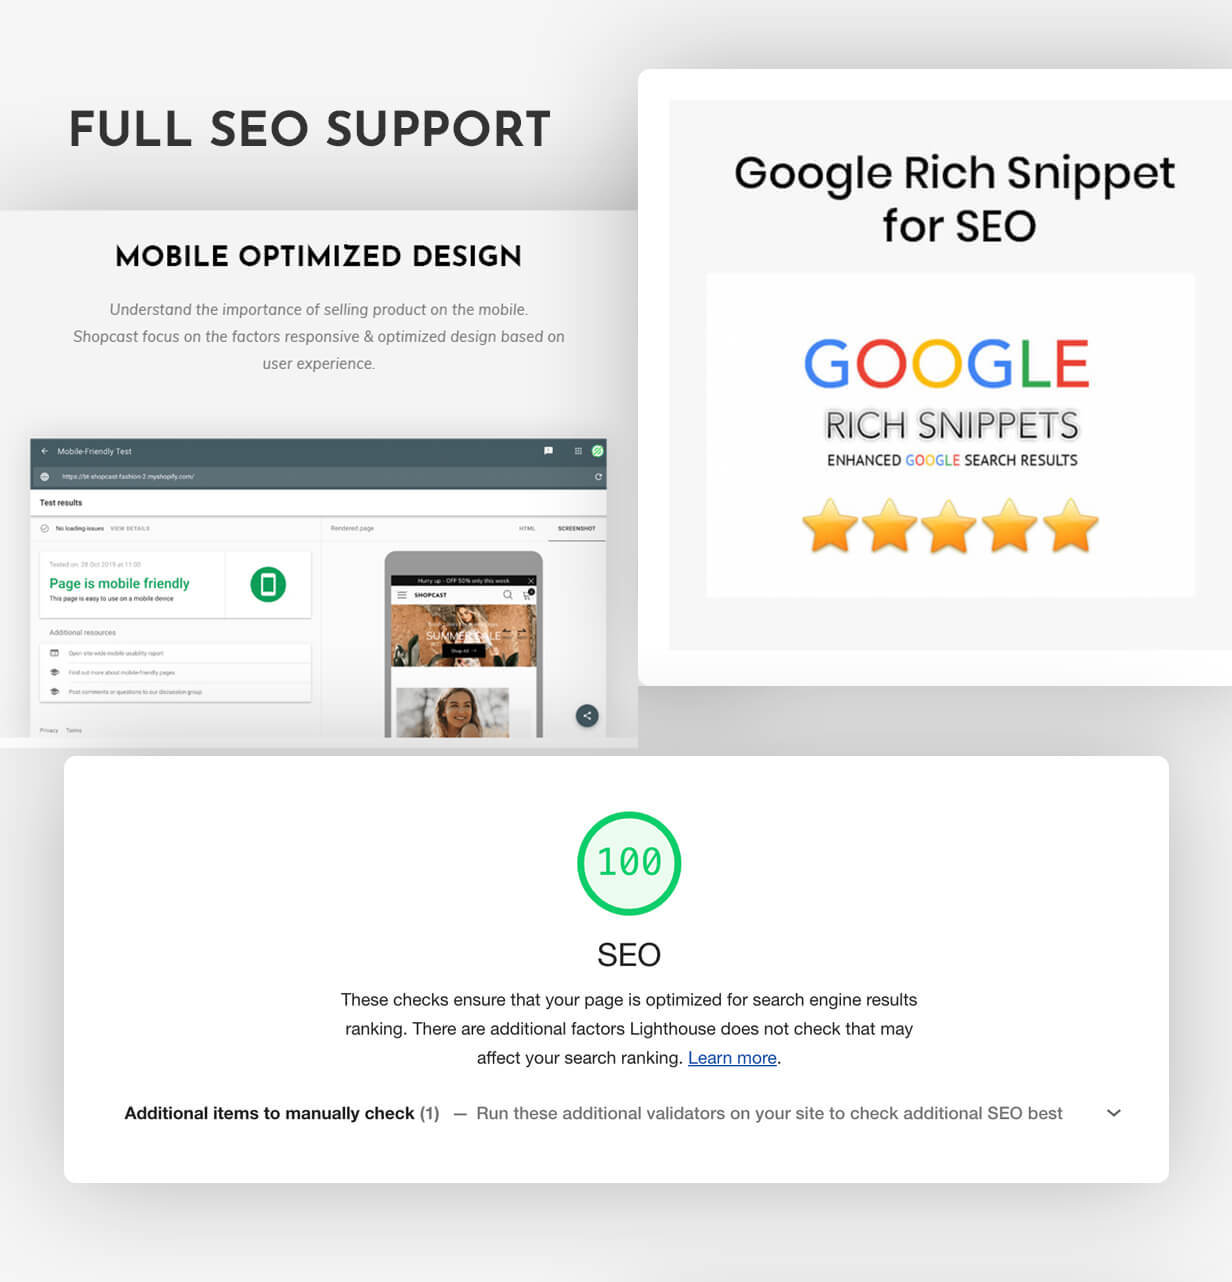 Full SEO Support